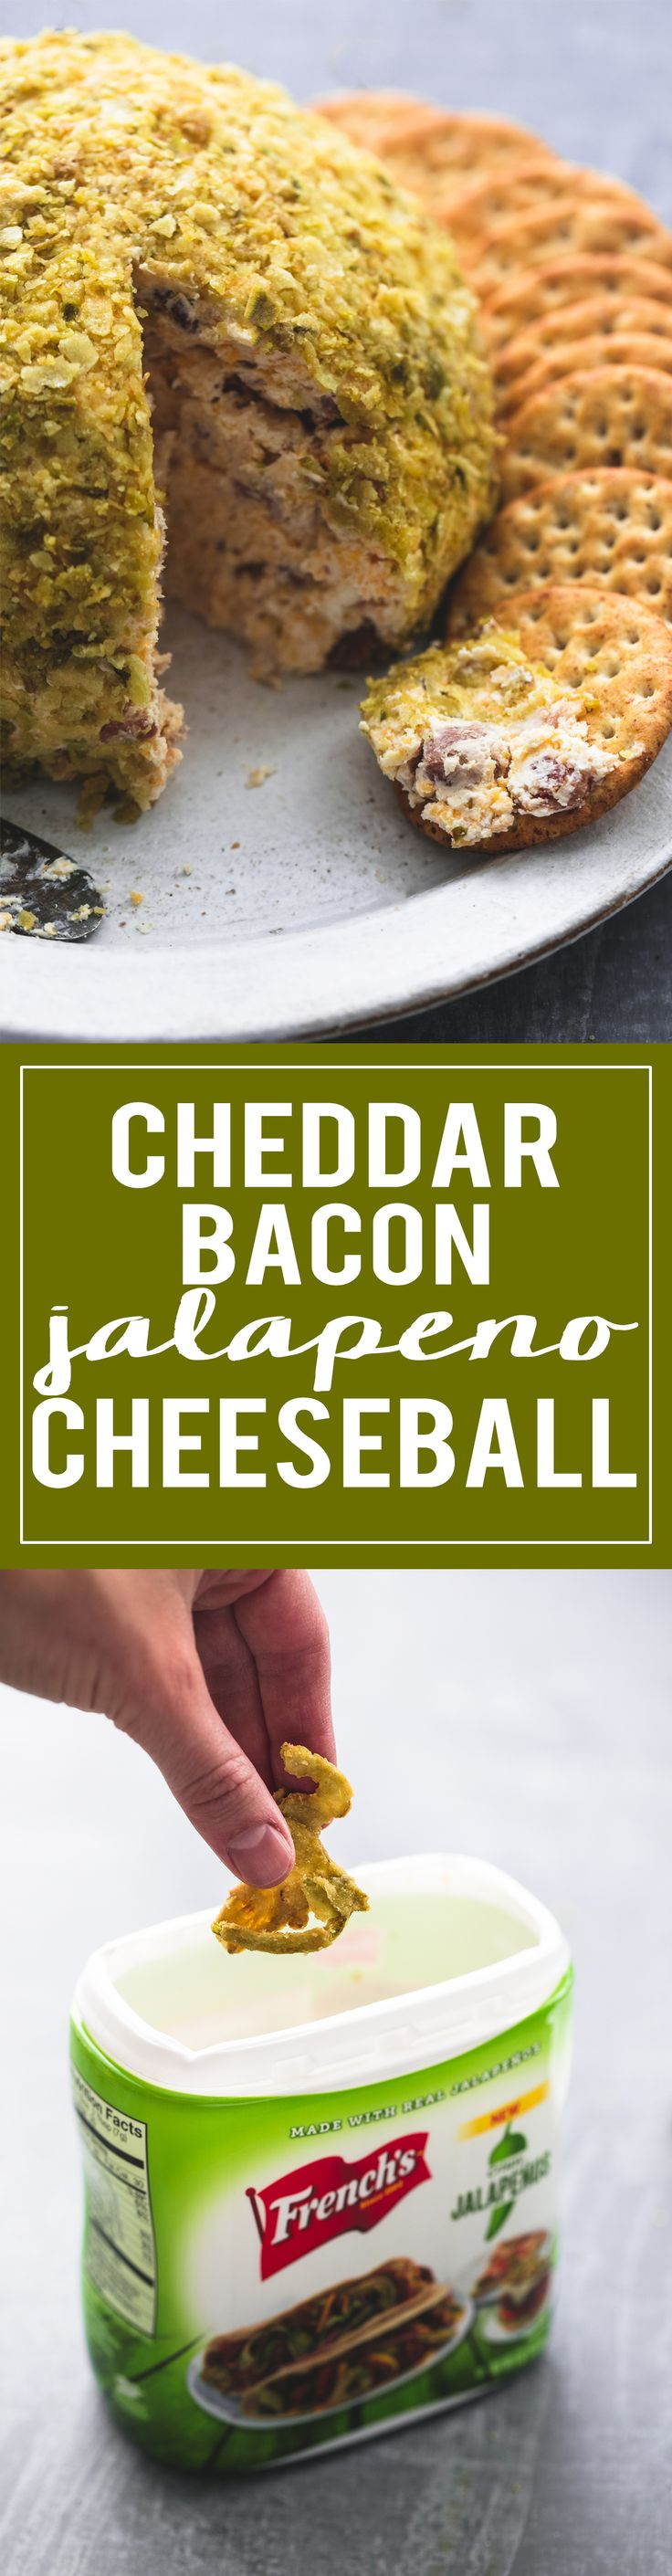 Cheddar Bacon Jalapeño Cheeseball | lecremedelacrumb.com  #ad #frenchs #holidaywithfrenchs @frenchsfoods